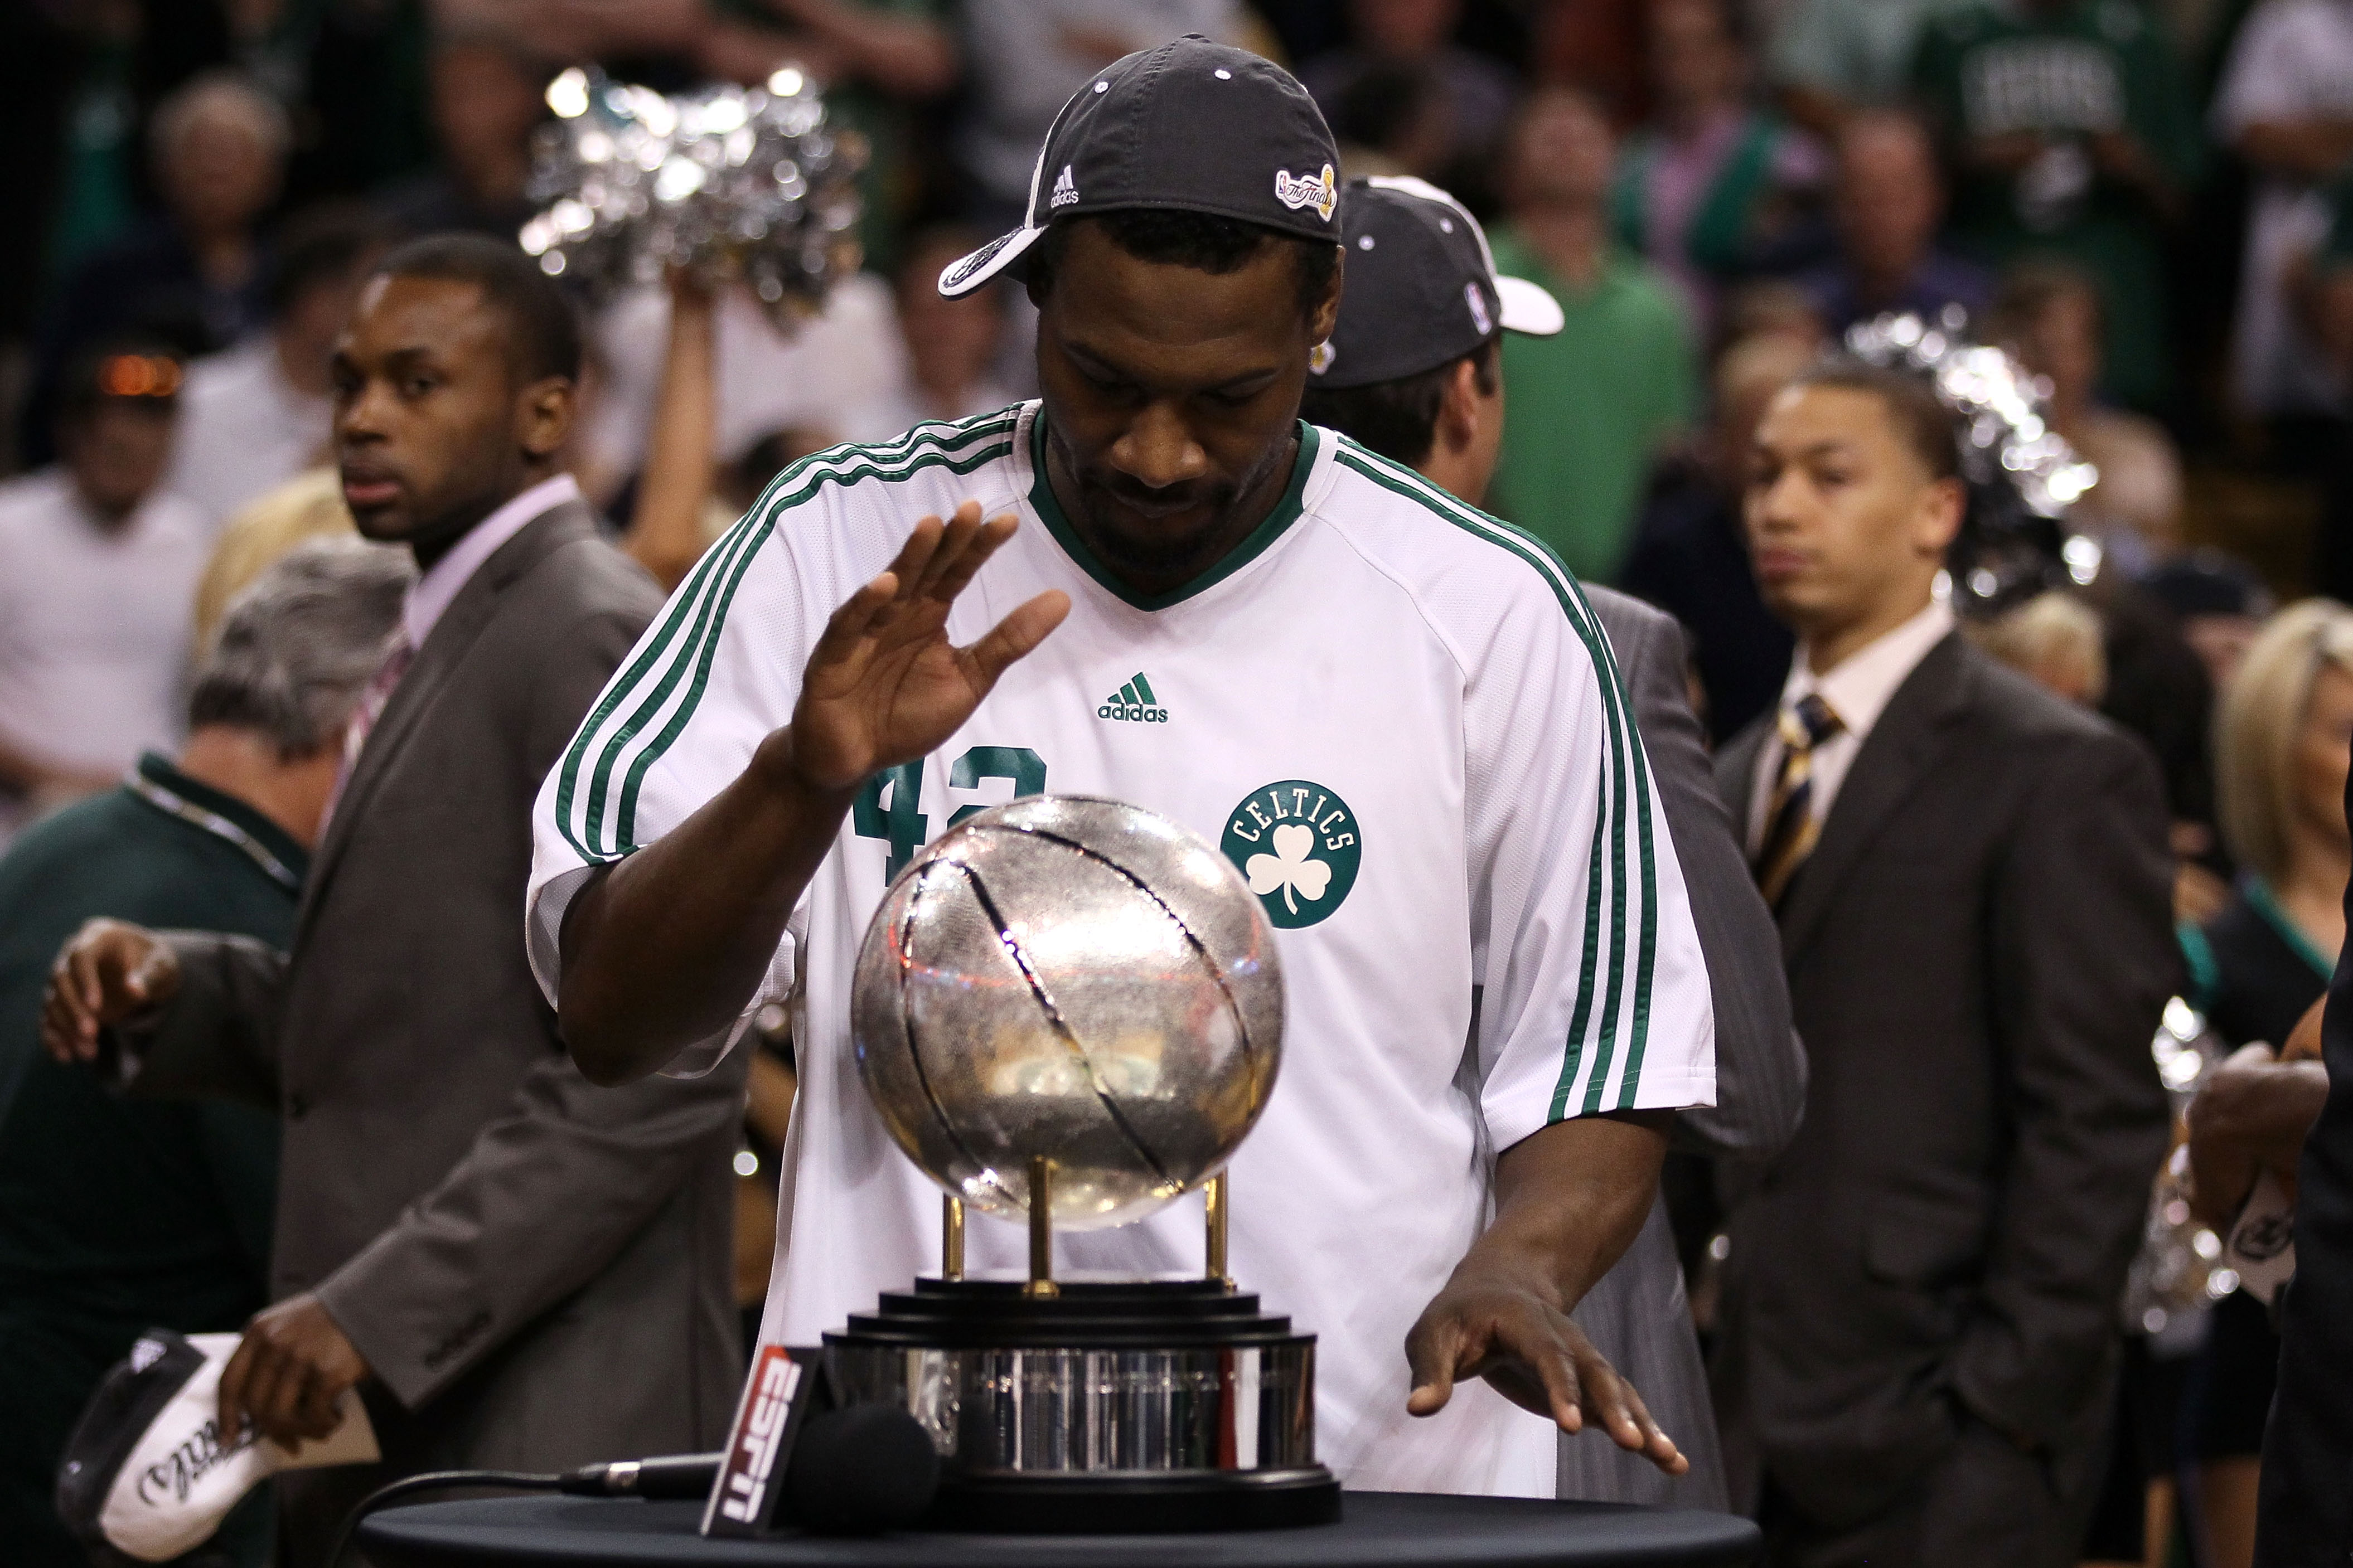 BOSTON - MAY 28:  Tony Allen #42 of the Boston Celtics celebrates with the Eastern COnference trophy after the Celtics won against the Orlando Magic in Game Six of the Eastern Conference Finals during the 2010 NBA Playoffs at TD Garden on May 28, 2010 in